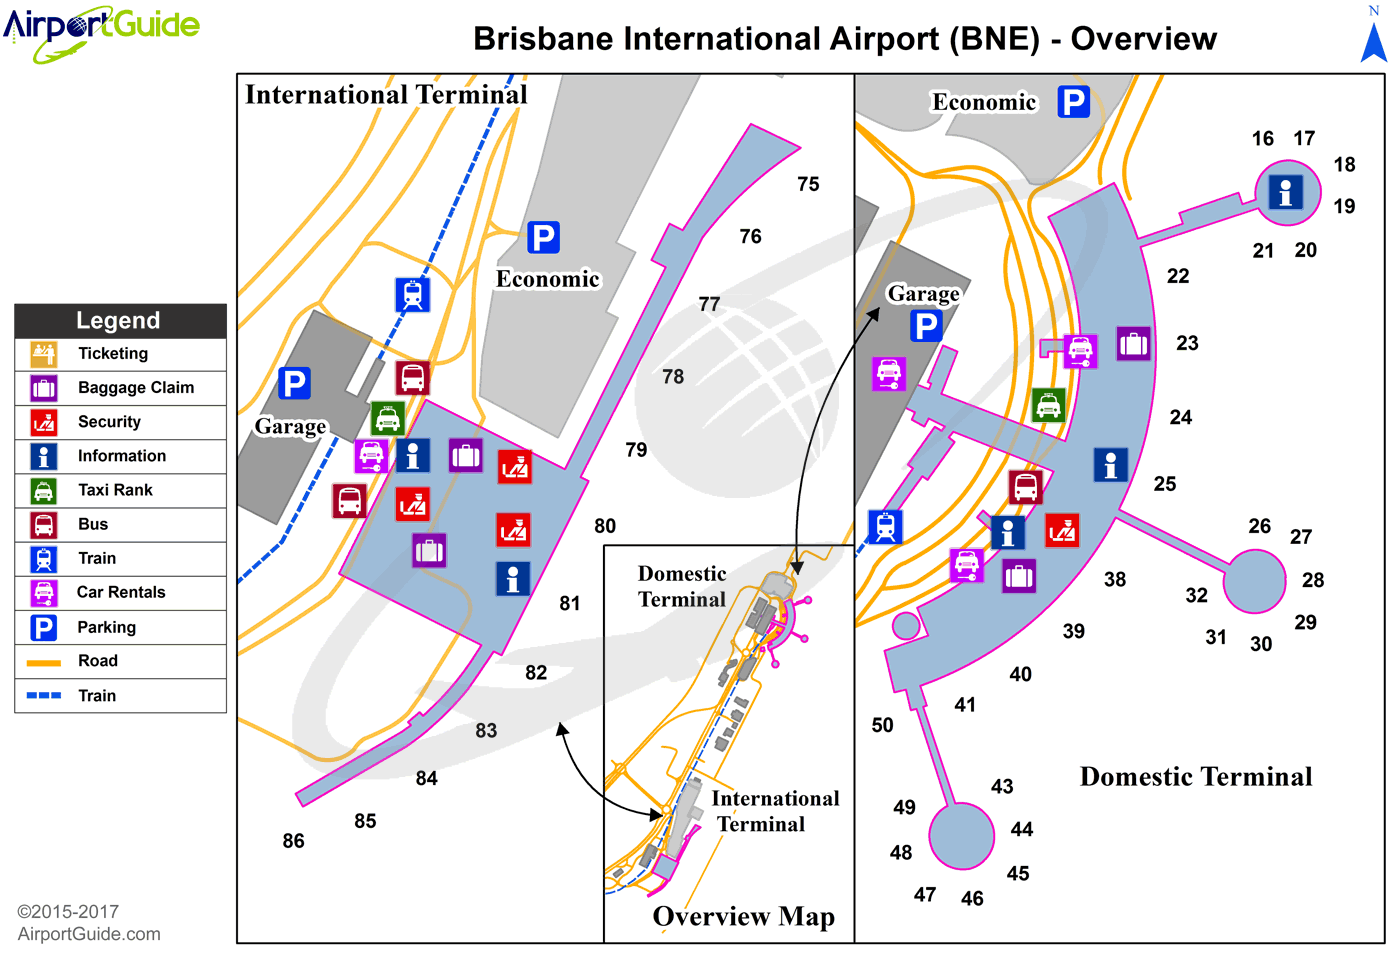 Brisbane - Brisbane International (BNE) Airport Terminal Map - Overview